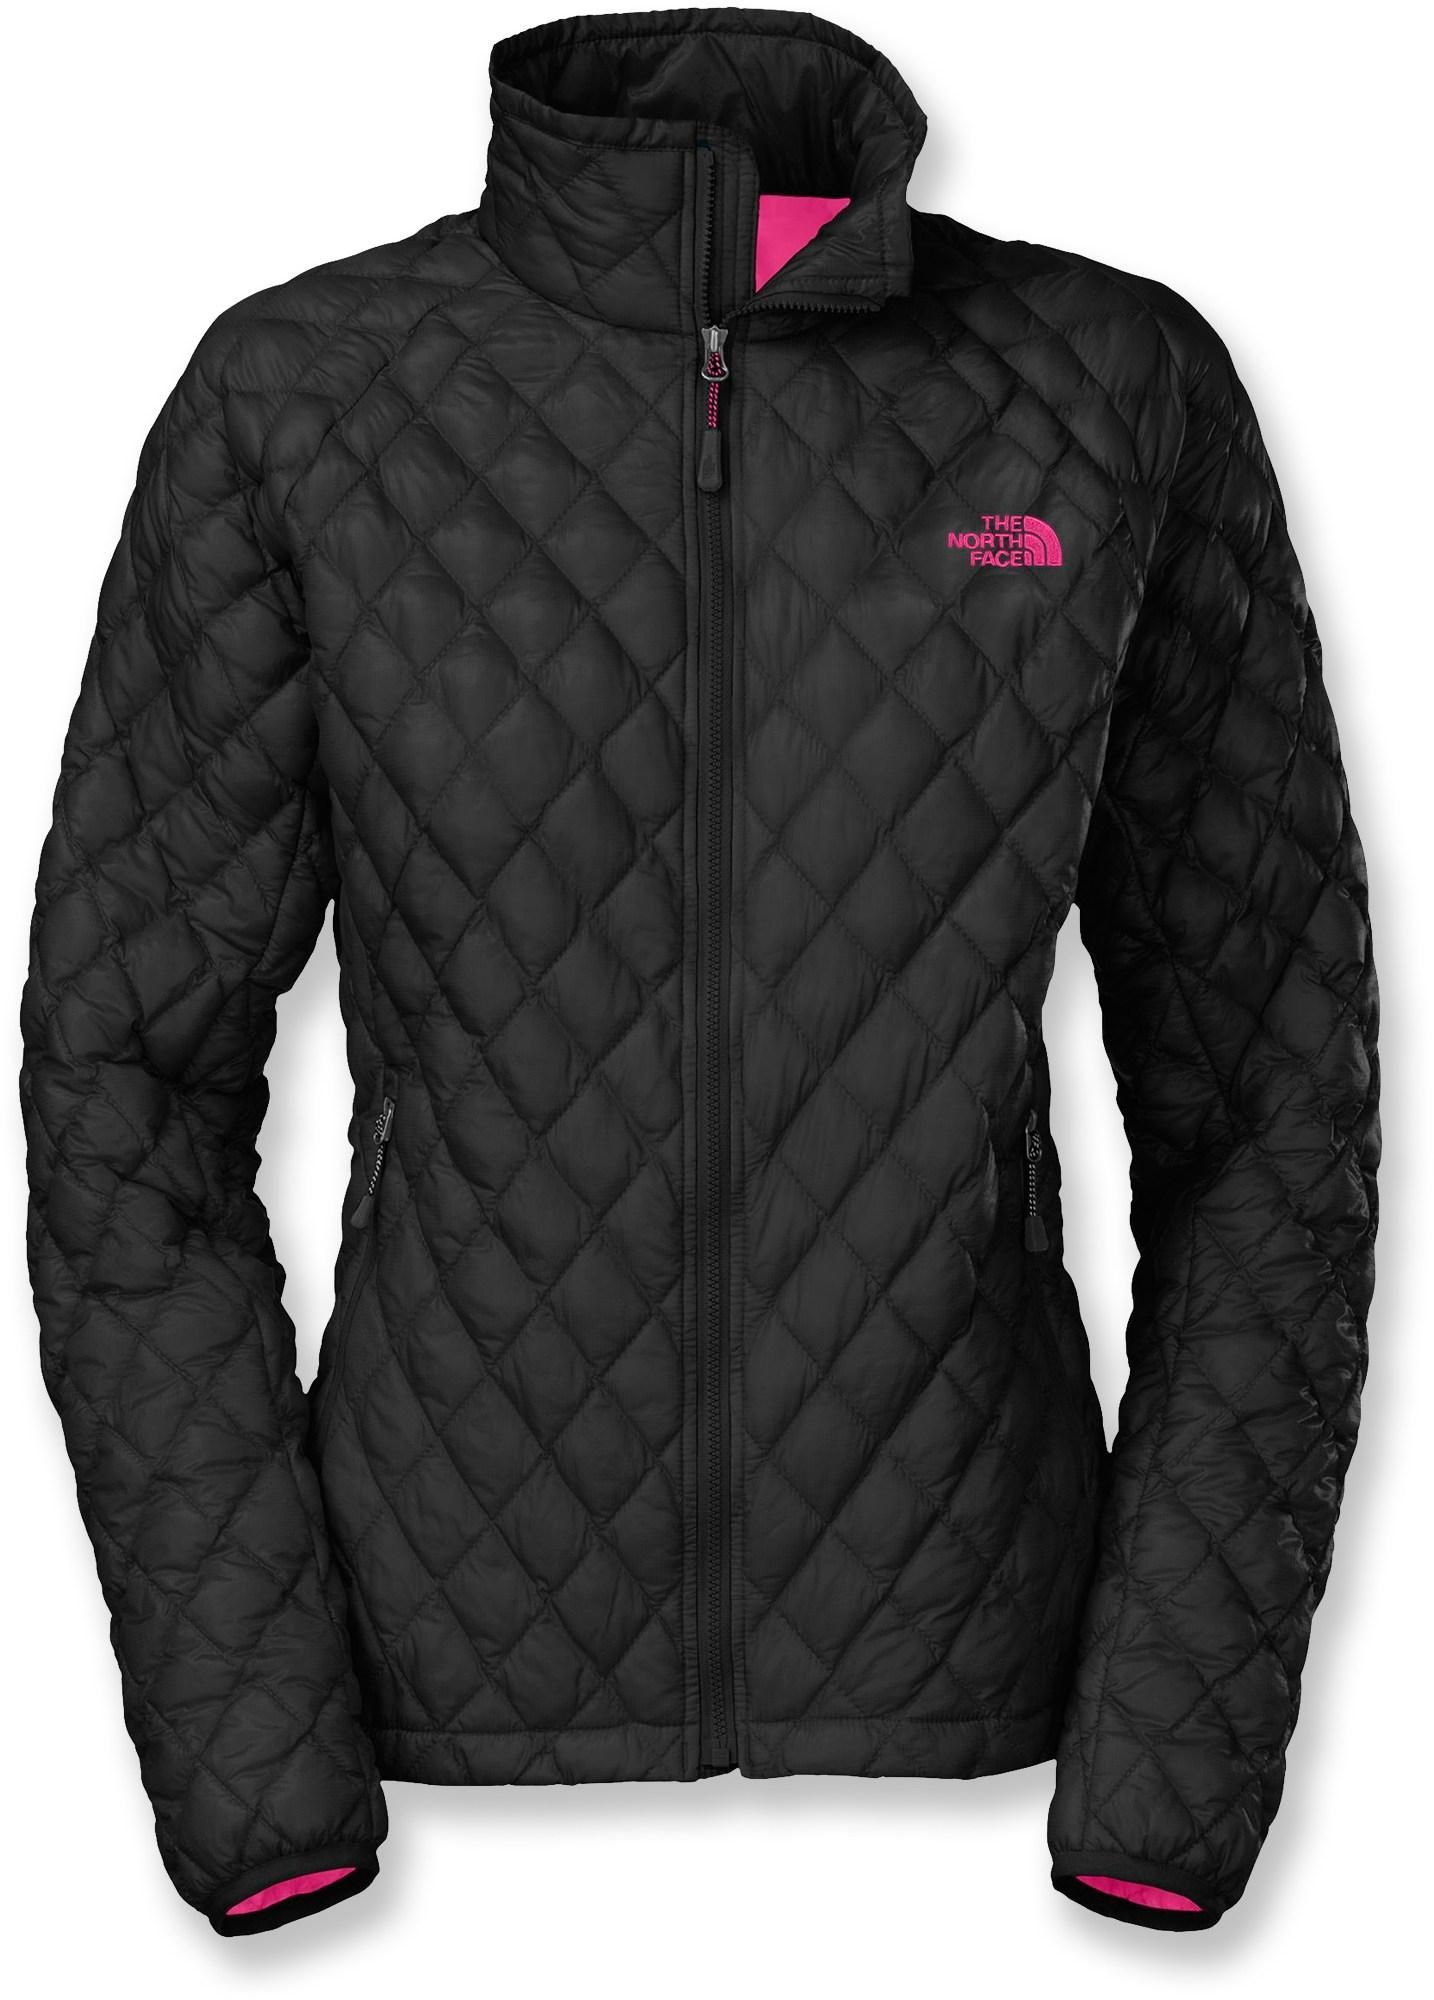 The North Face ThermoBall™ women s jacket puts revolutionary new ThermoBall™  synthetic insulation to work. Cozy and light 5c0599c7a847